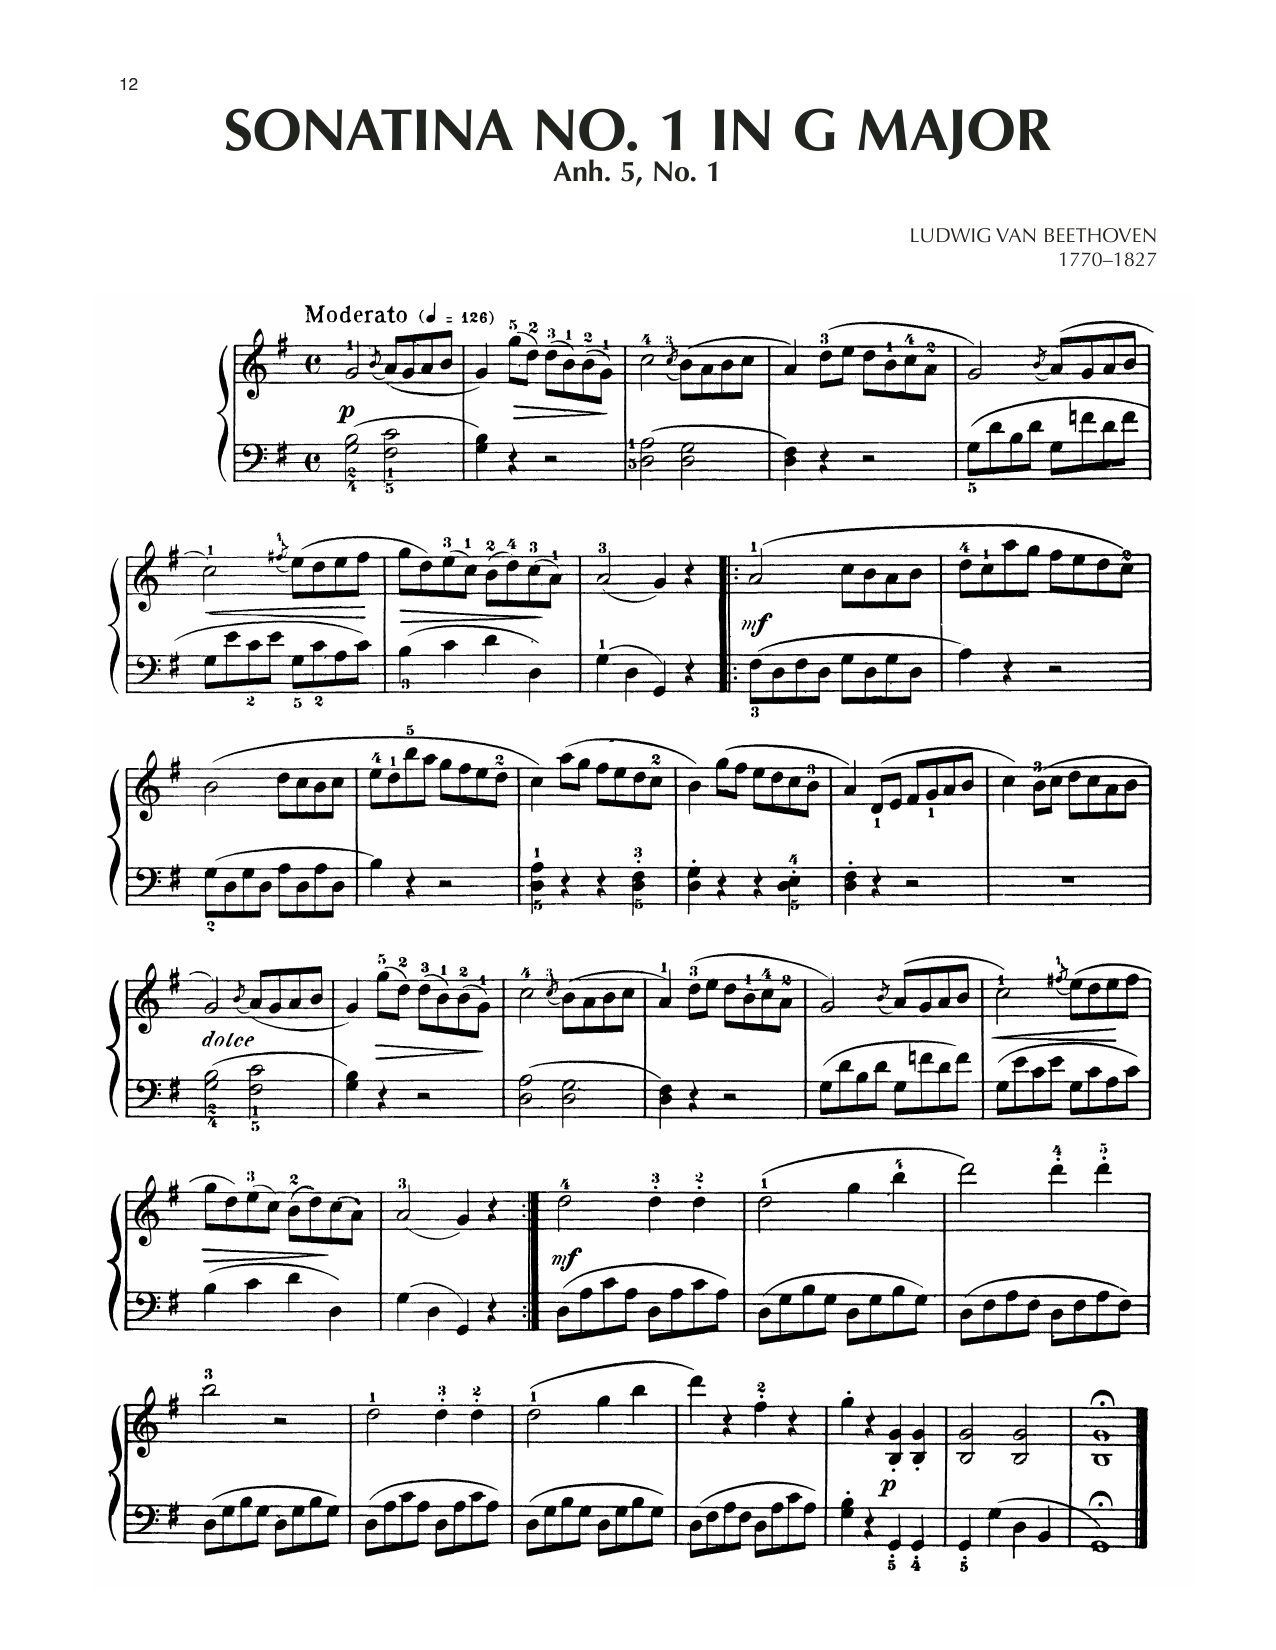 Sonatina In G Major, Anh. 5, No. 1 Sheet Music